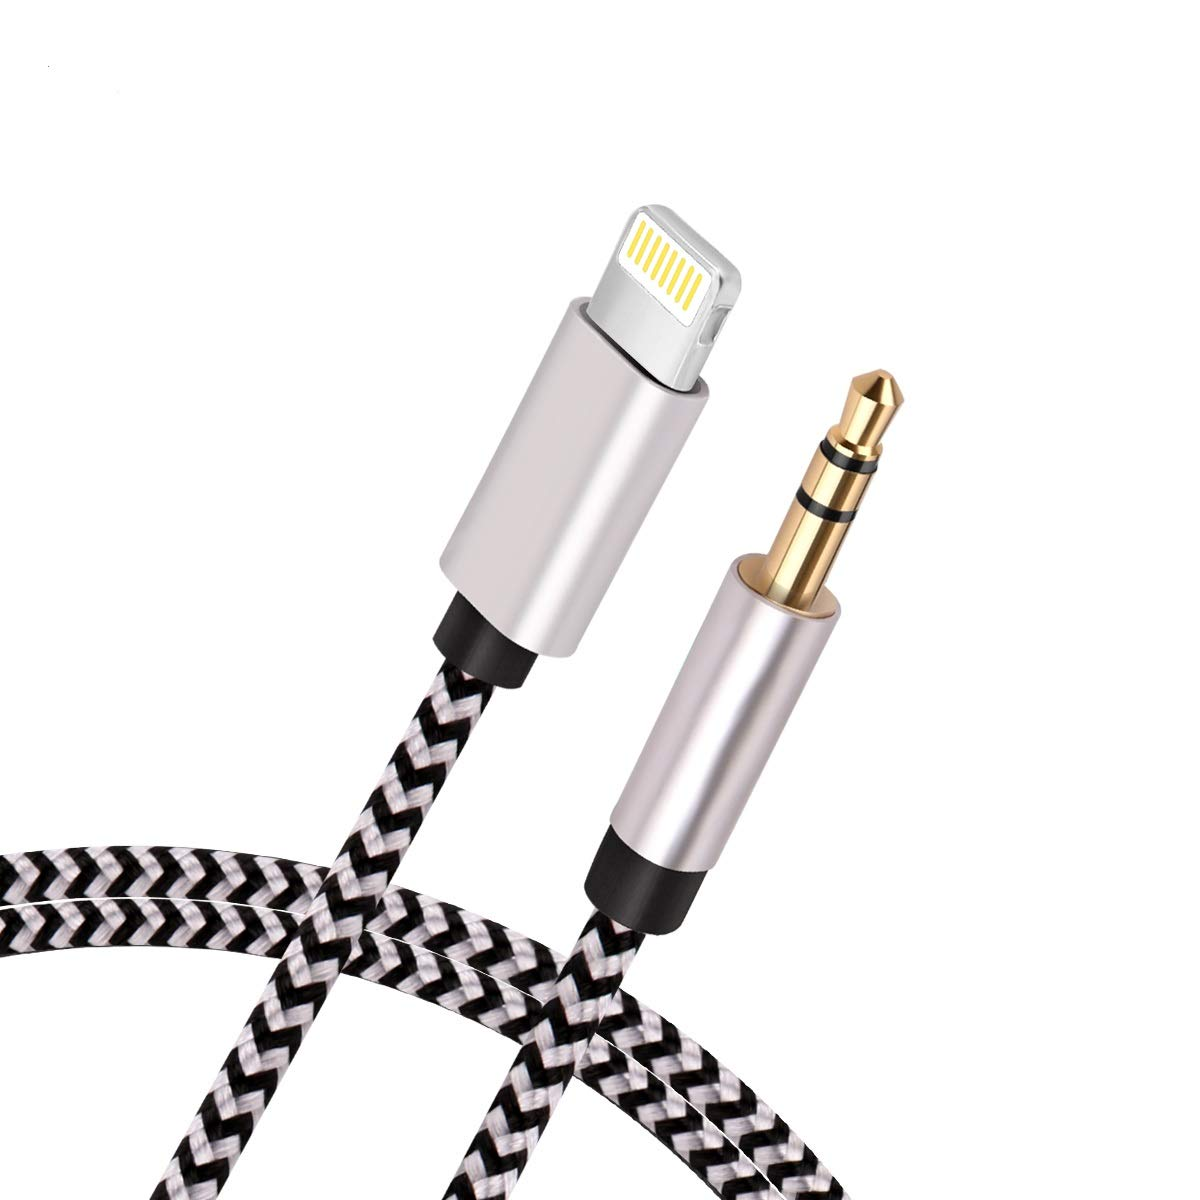 size 40 34ef8 d1ad5 Details about [New Version]Aux Cord for iPhone, Hzmirzk 3.5mm Aux Cable  iPhone 7/X/8/8...